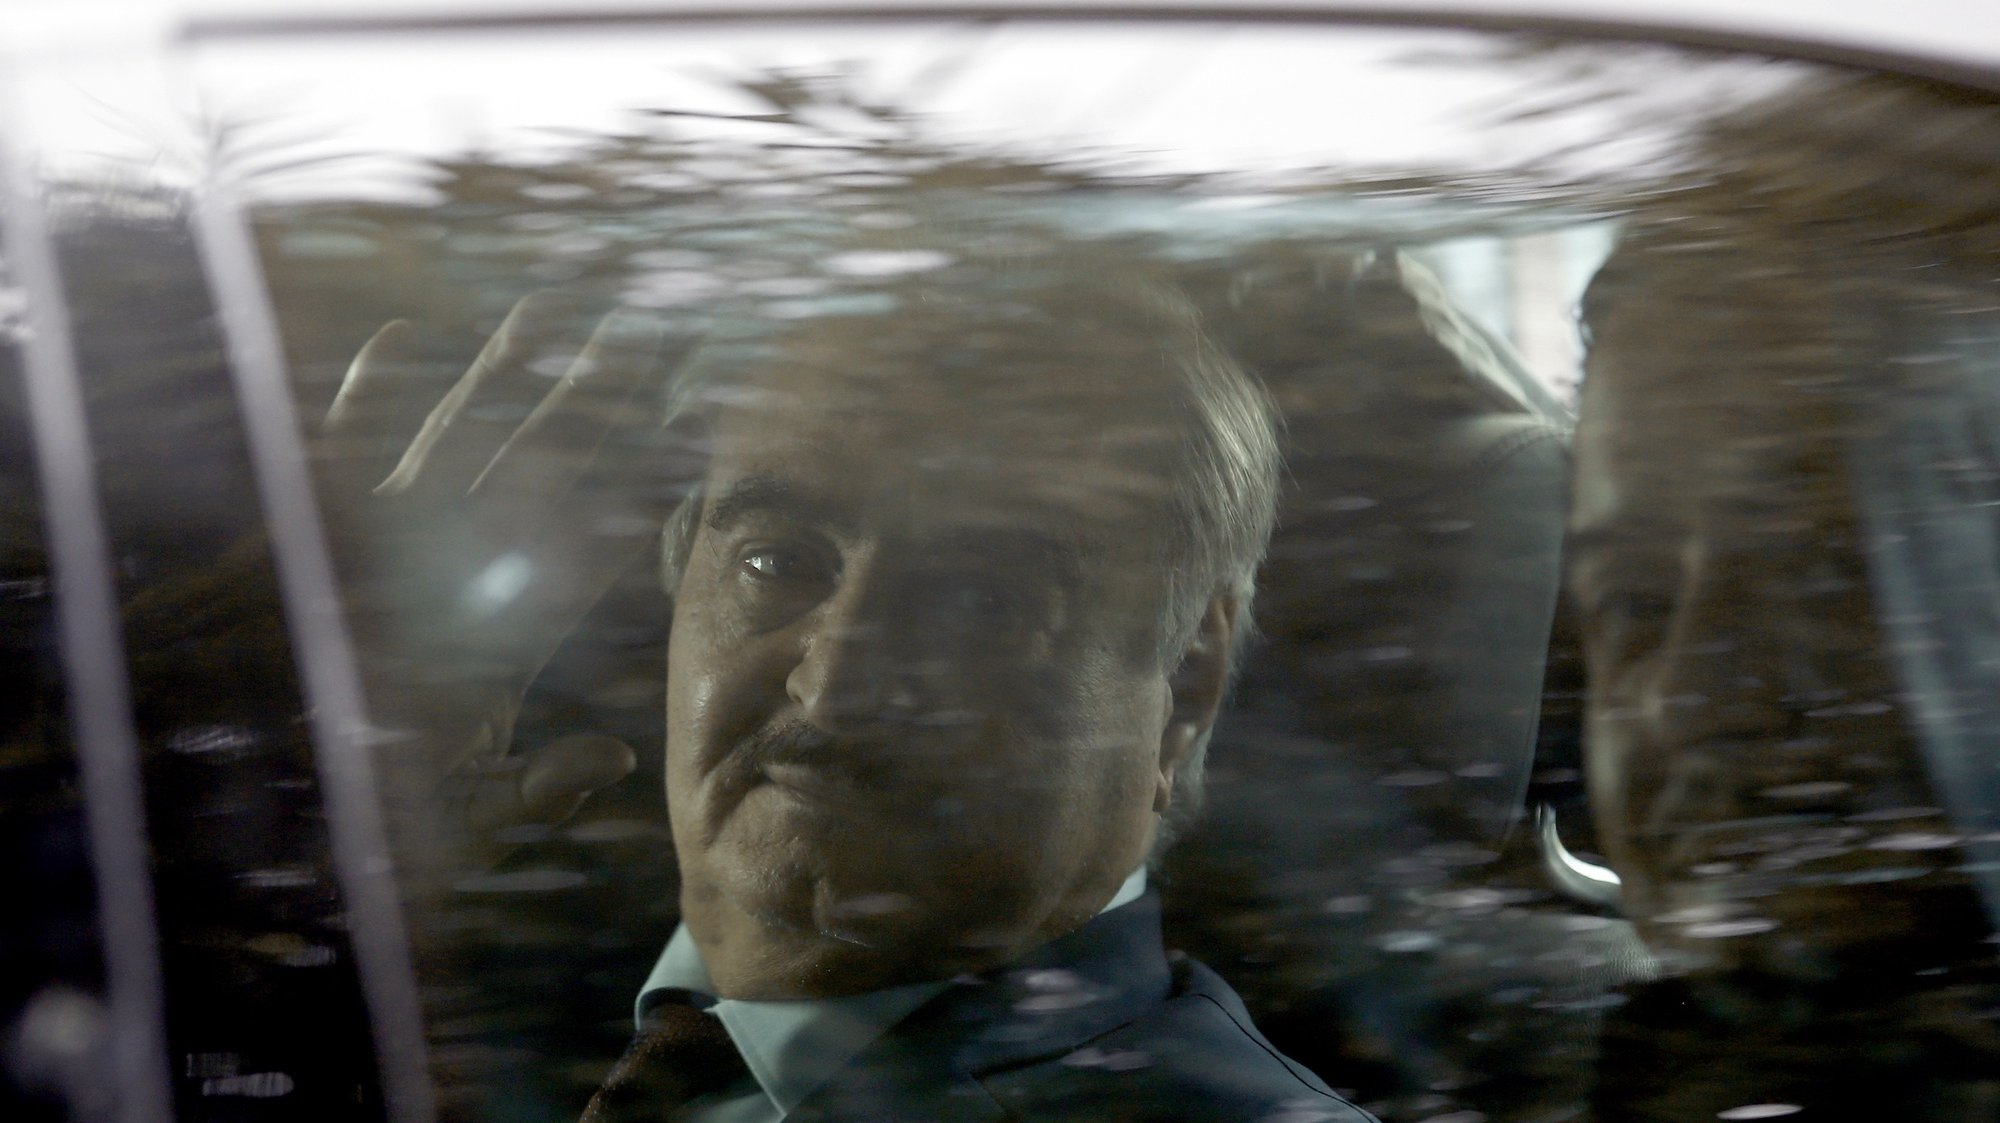 epa08135423 A security guard is seen reflected on a window's car as Commander of the Libyan National Army (LNA) Khalifa Haftar waves to phojournalists from inside a car as he leaves after his meeting with Greek Foreign Ministrer Dendias in Athens, Greece, 17 January 2020. Gen. Haftar is visiting Athens where he is expected to meet with Greek Prime Minister Mitsotakis.  EPA/YANNIS KOLESIDIS